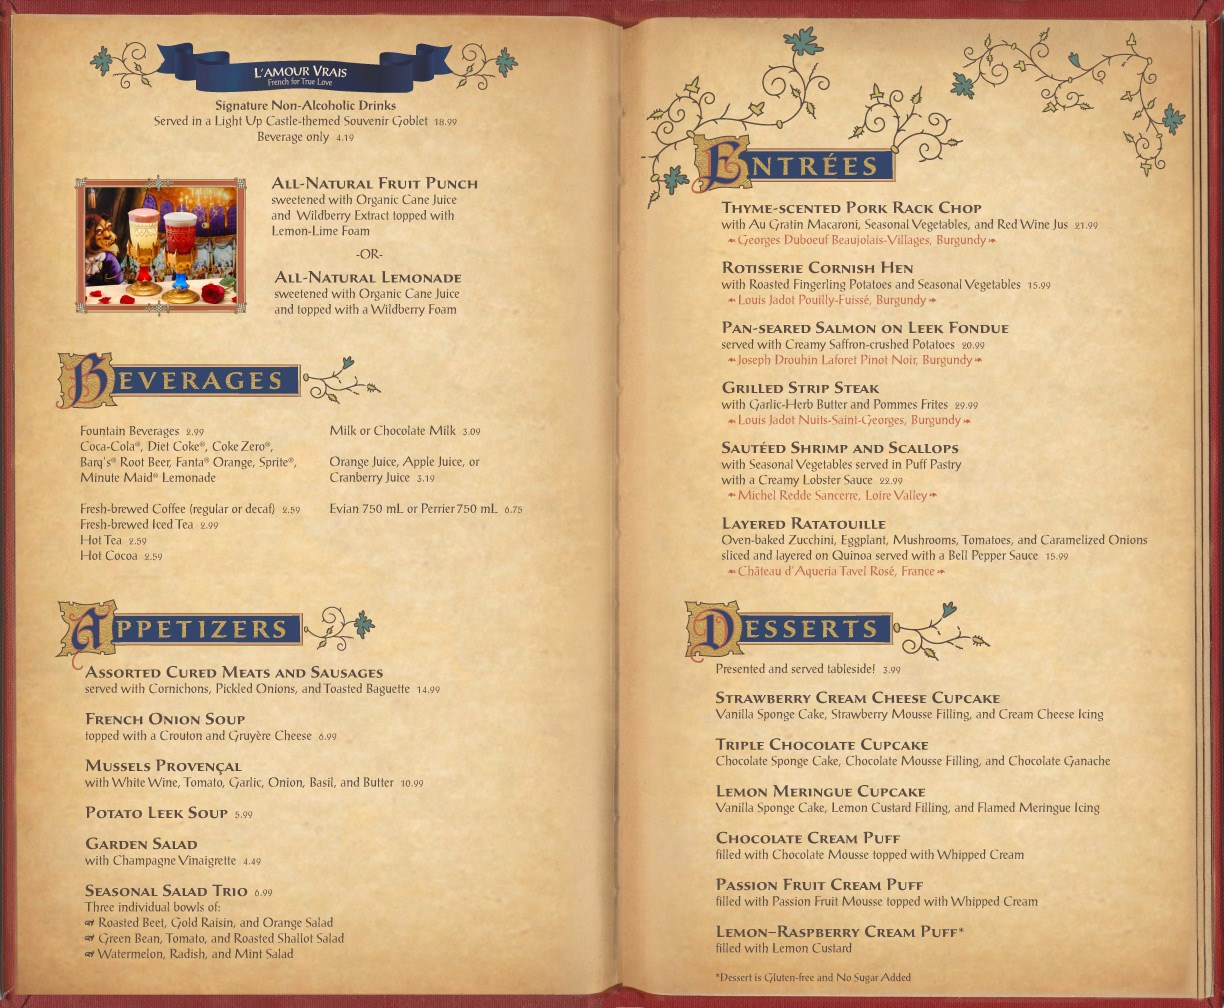 Be Our Guest Restaurant menu art